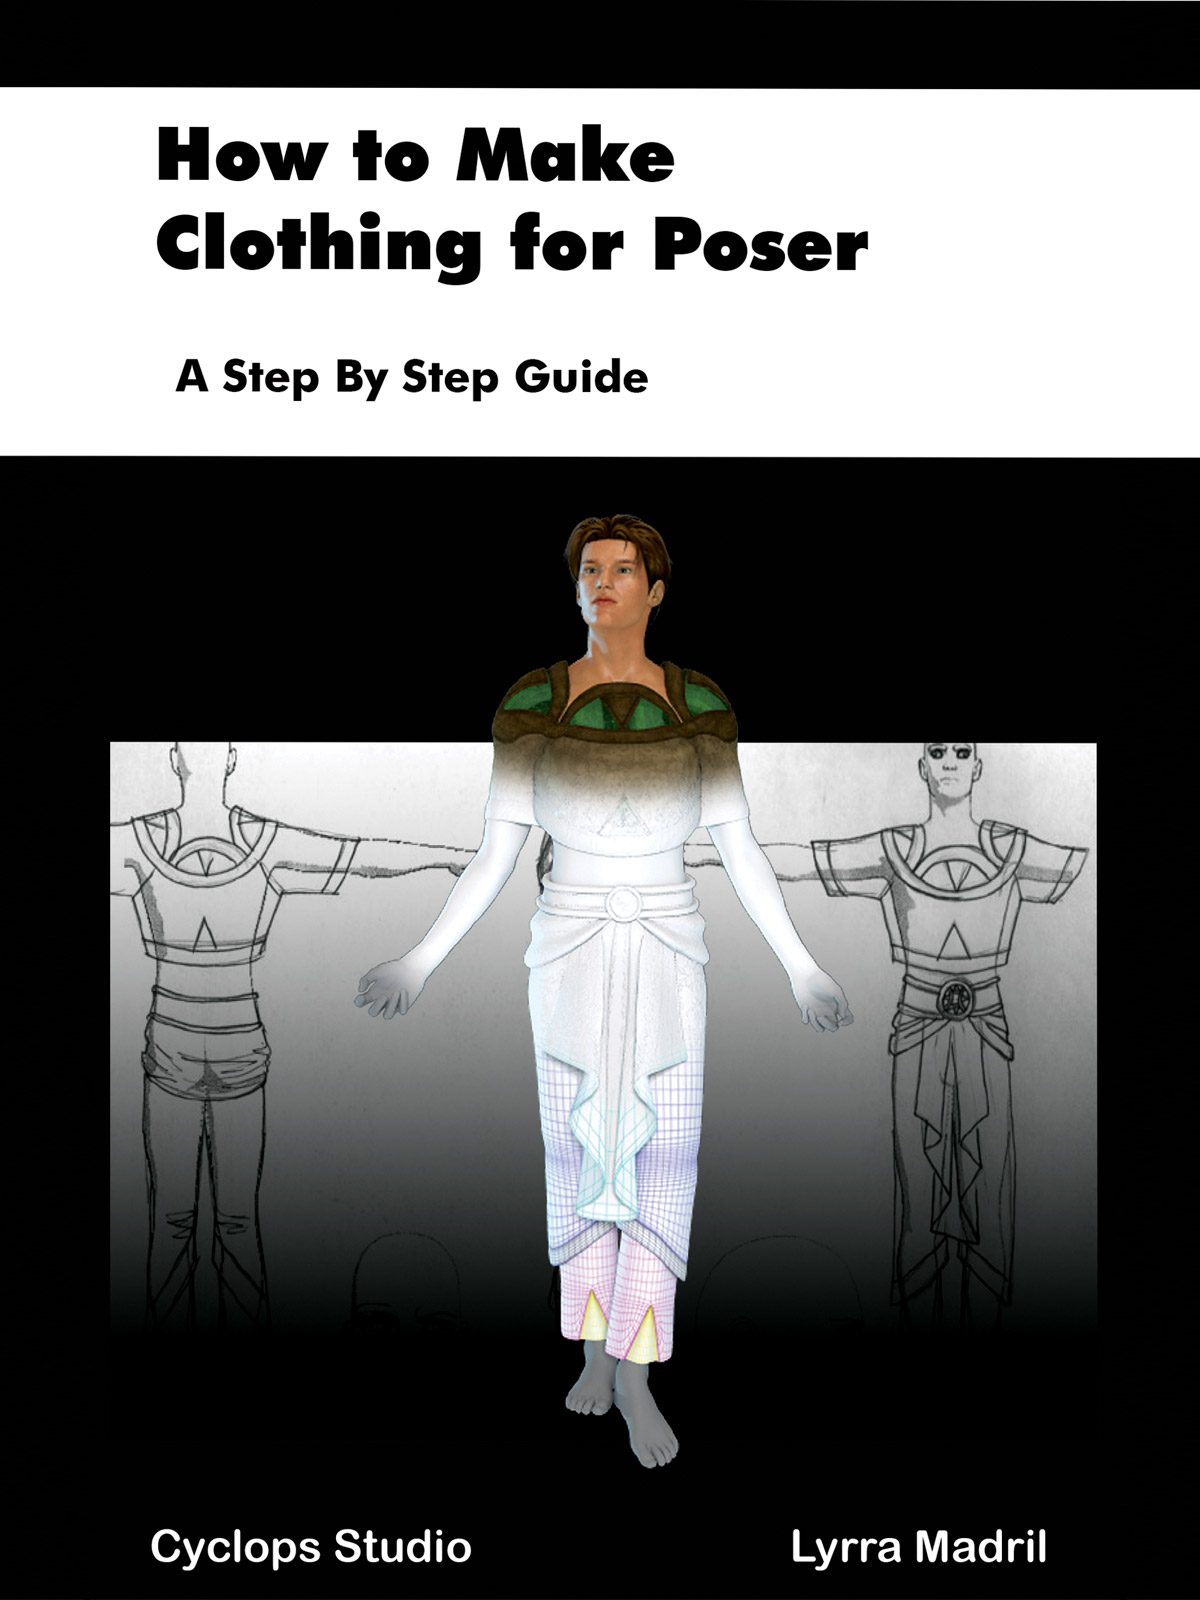 How to Make Clothing for Poser: A Step By Step Guide